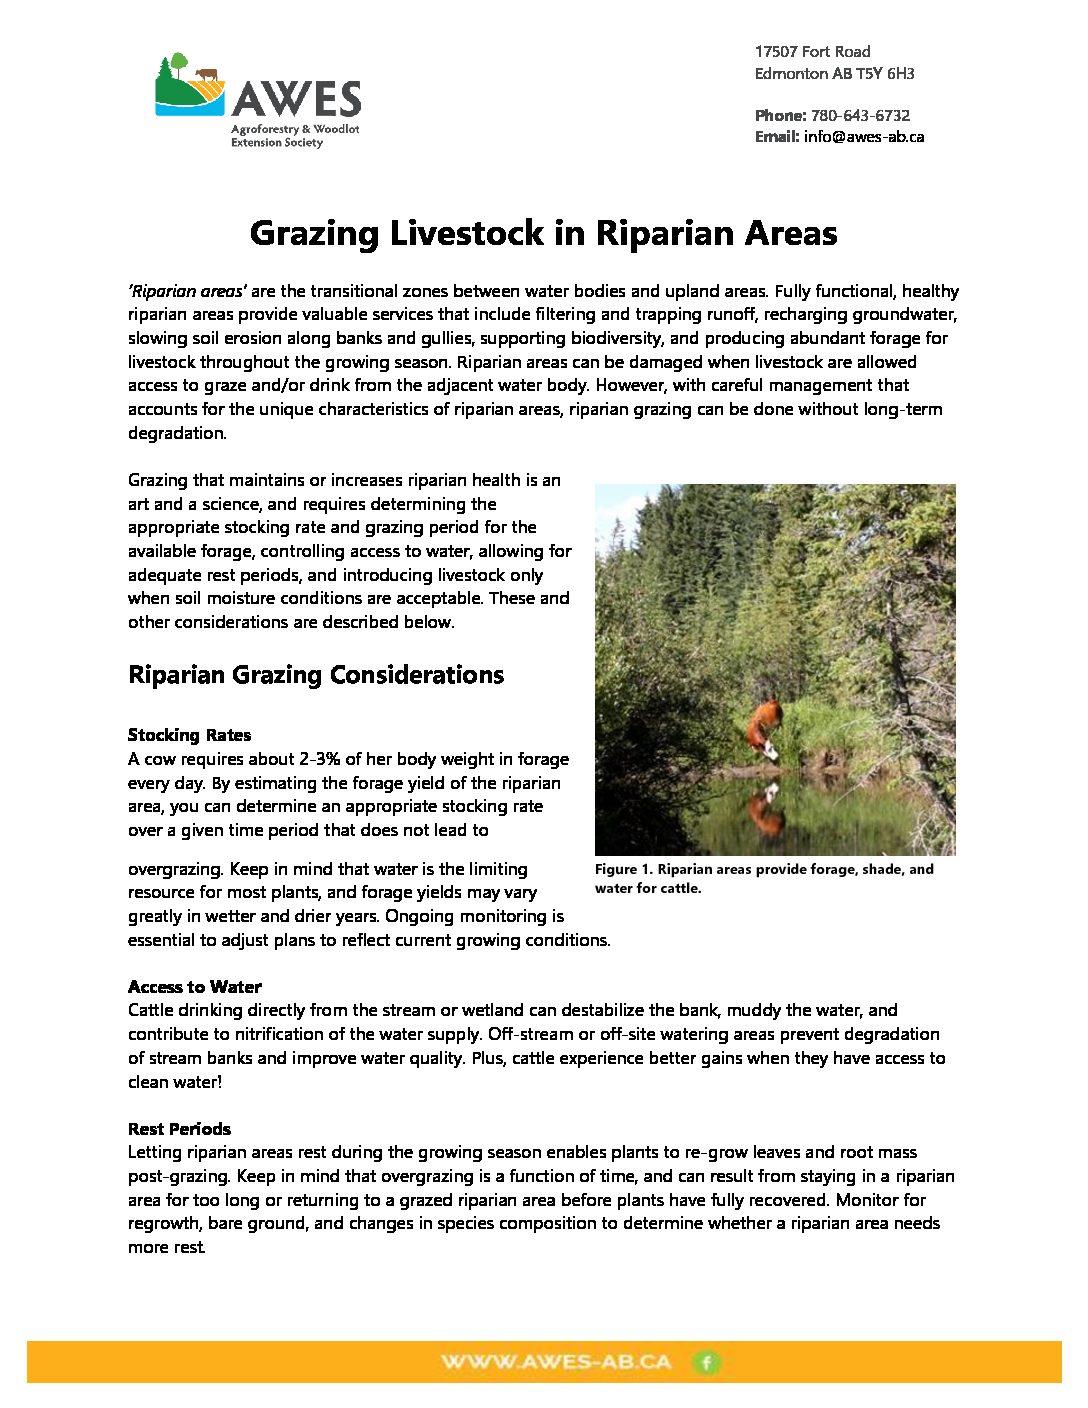 Grazing Livestock in Riparian Areas